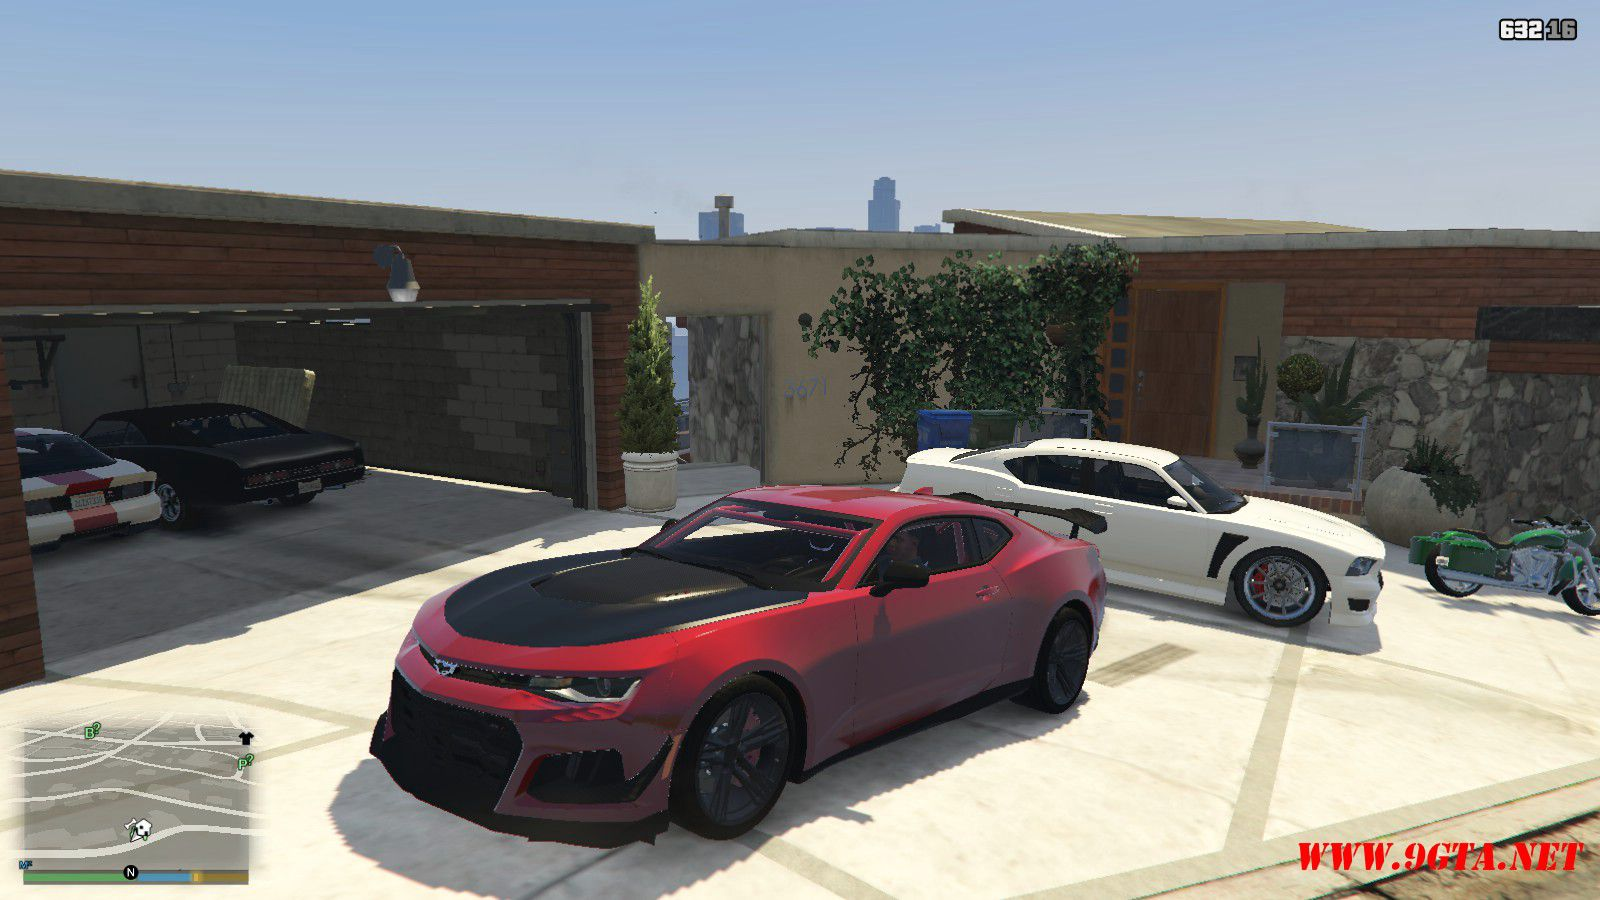 2018 Chevrolet Camaro ZL1 LE Mod For GTA5 (1)